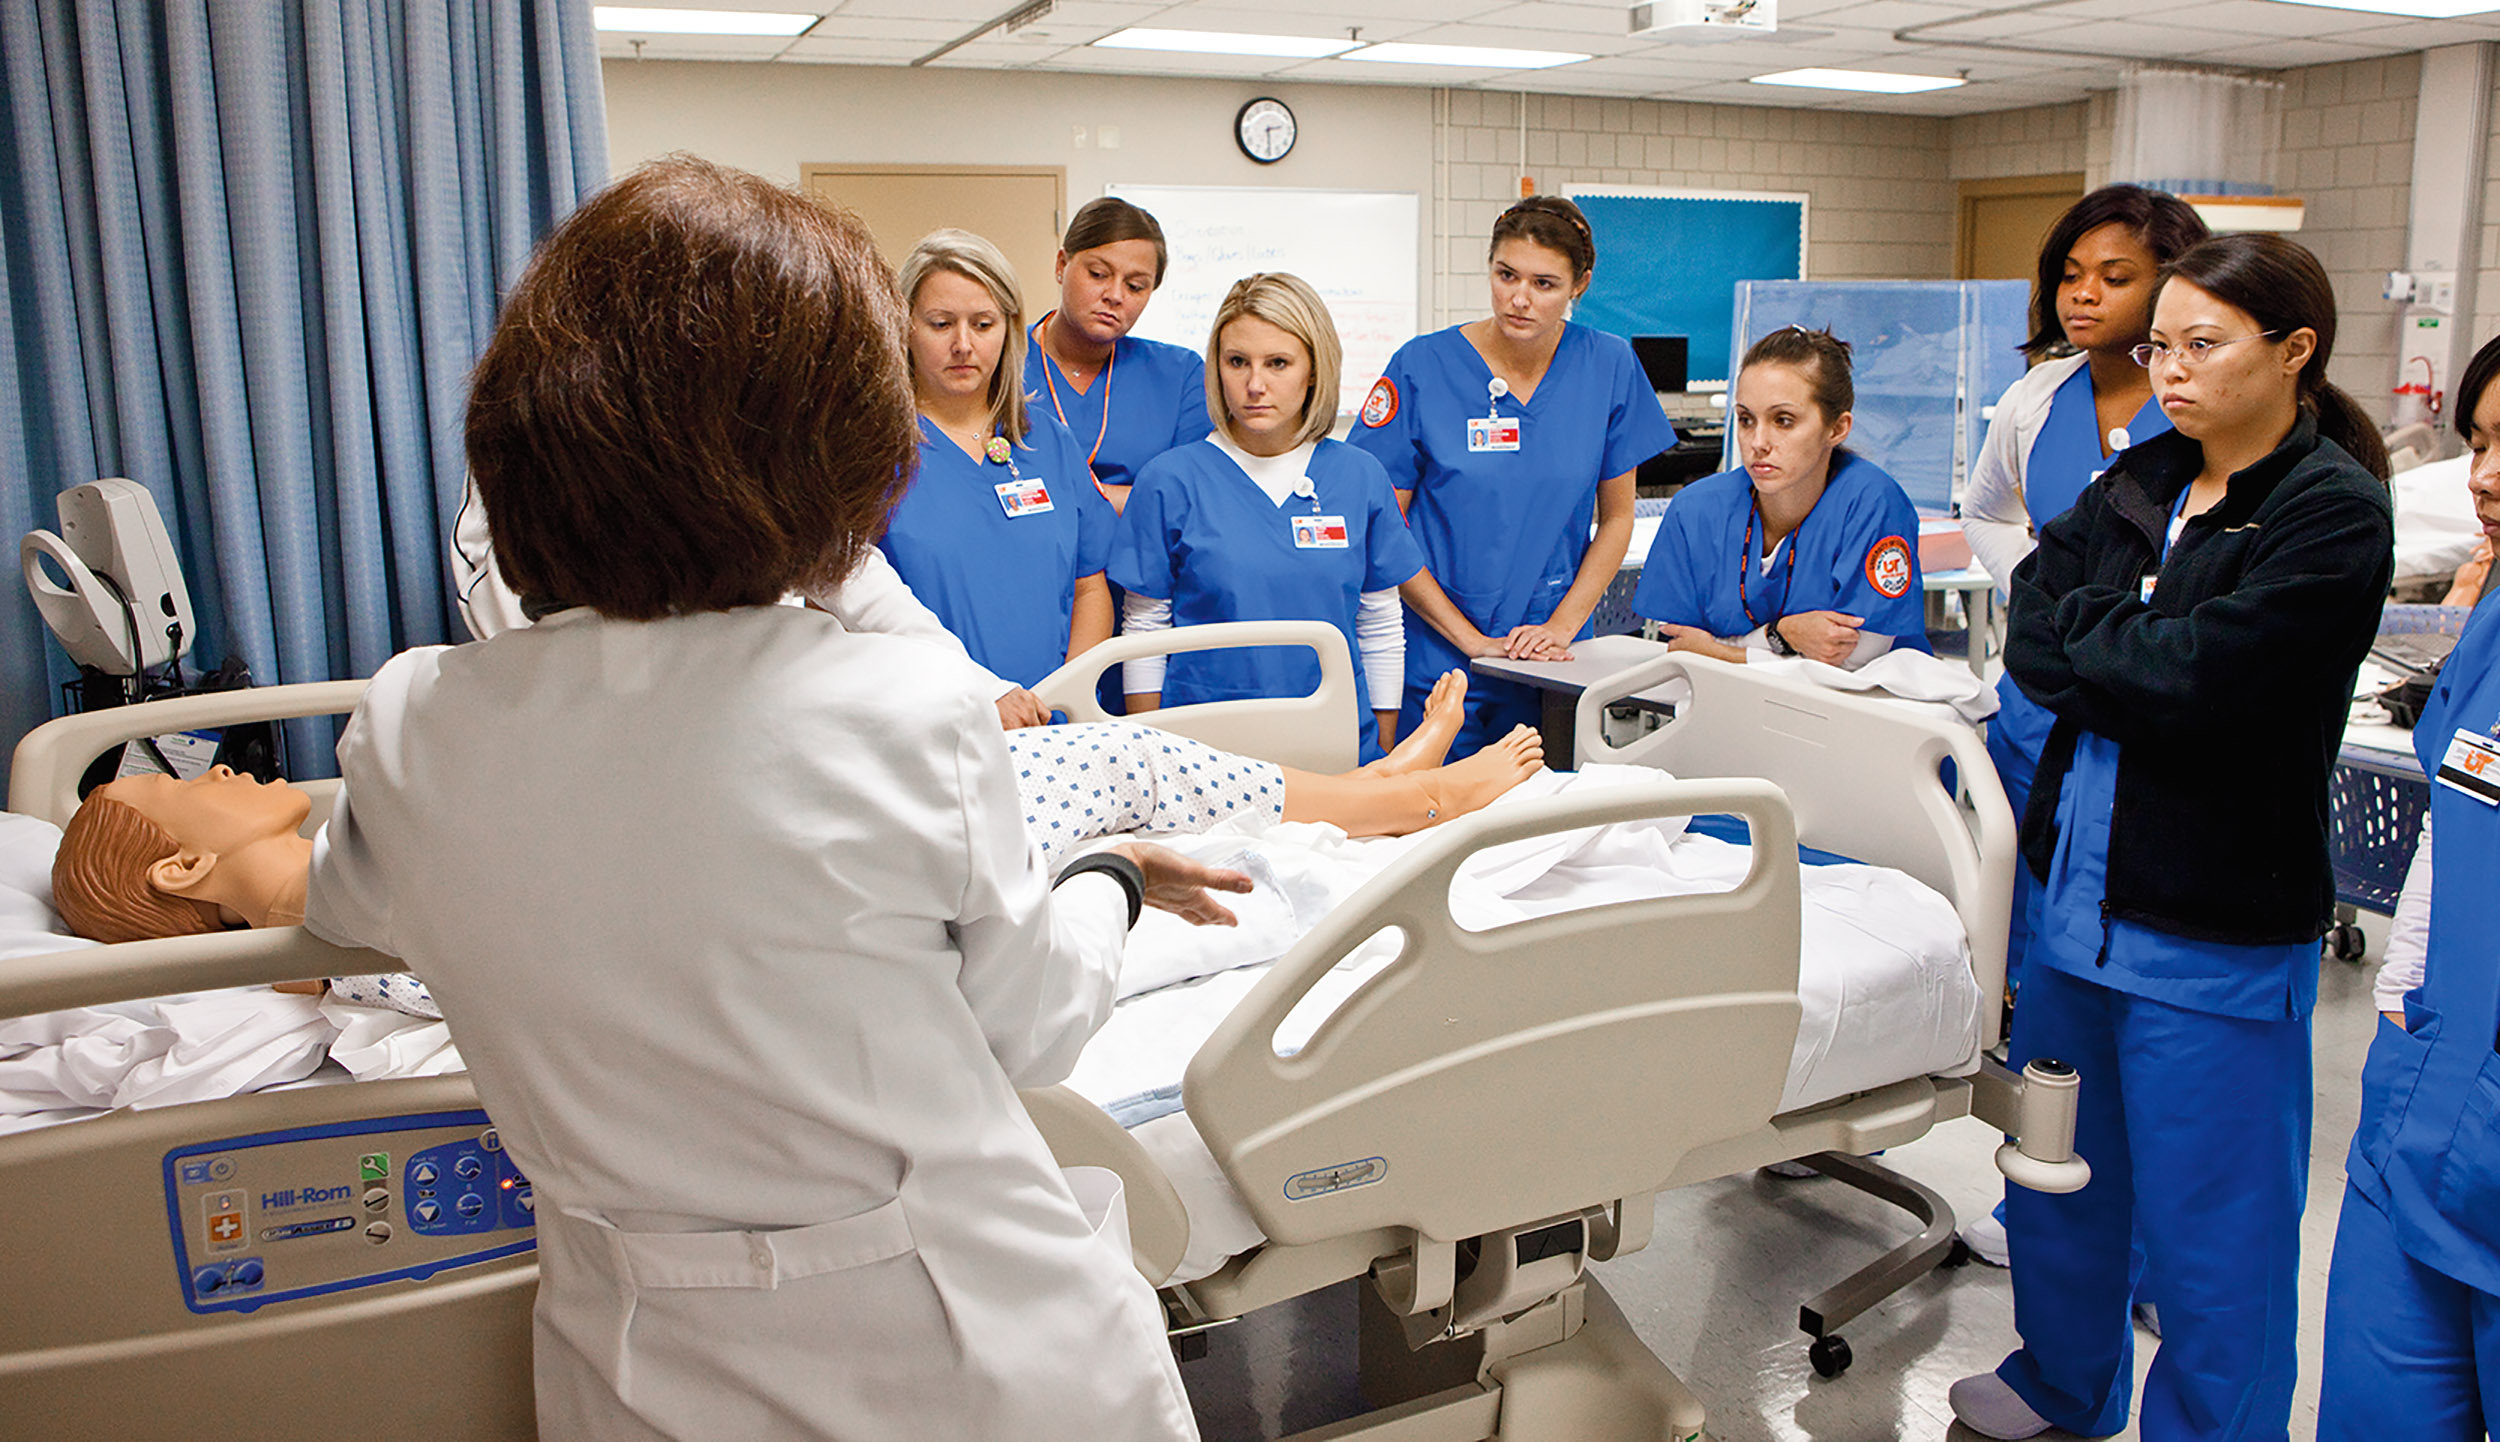 Students receive instruction bedside in simulation lab.